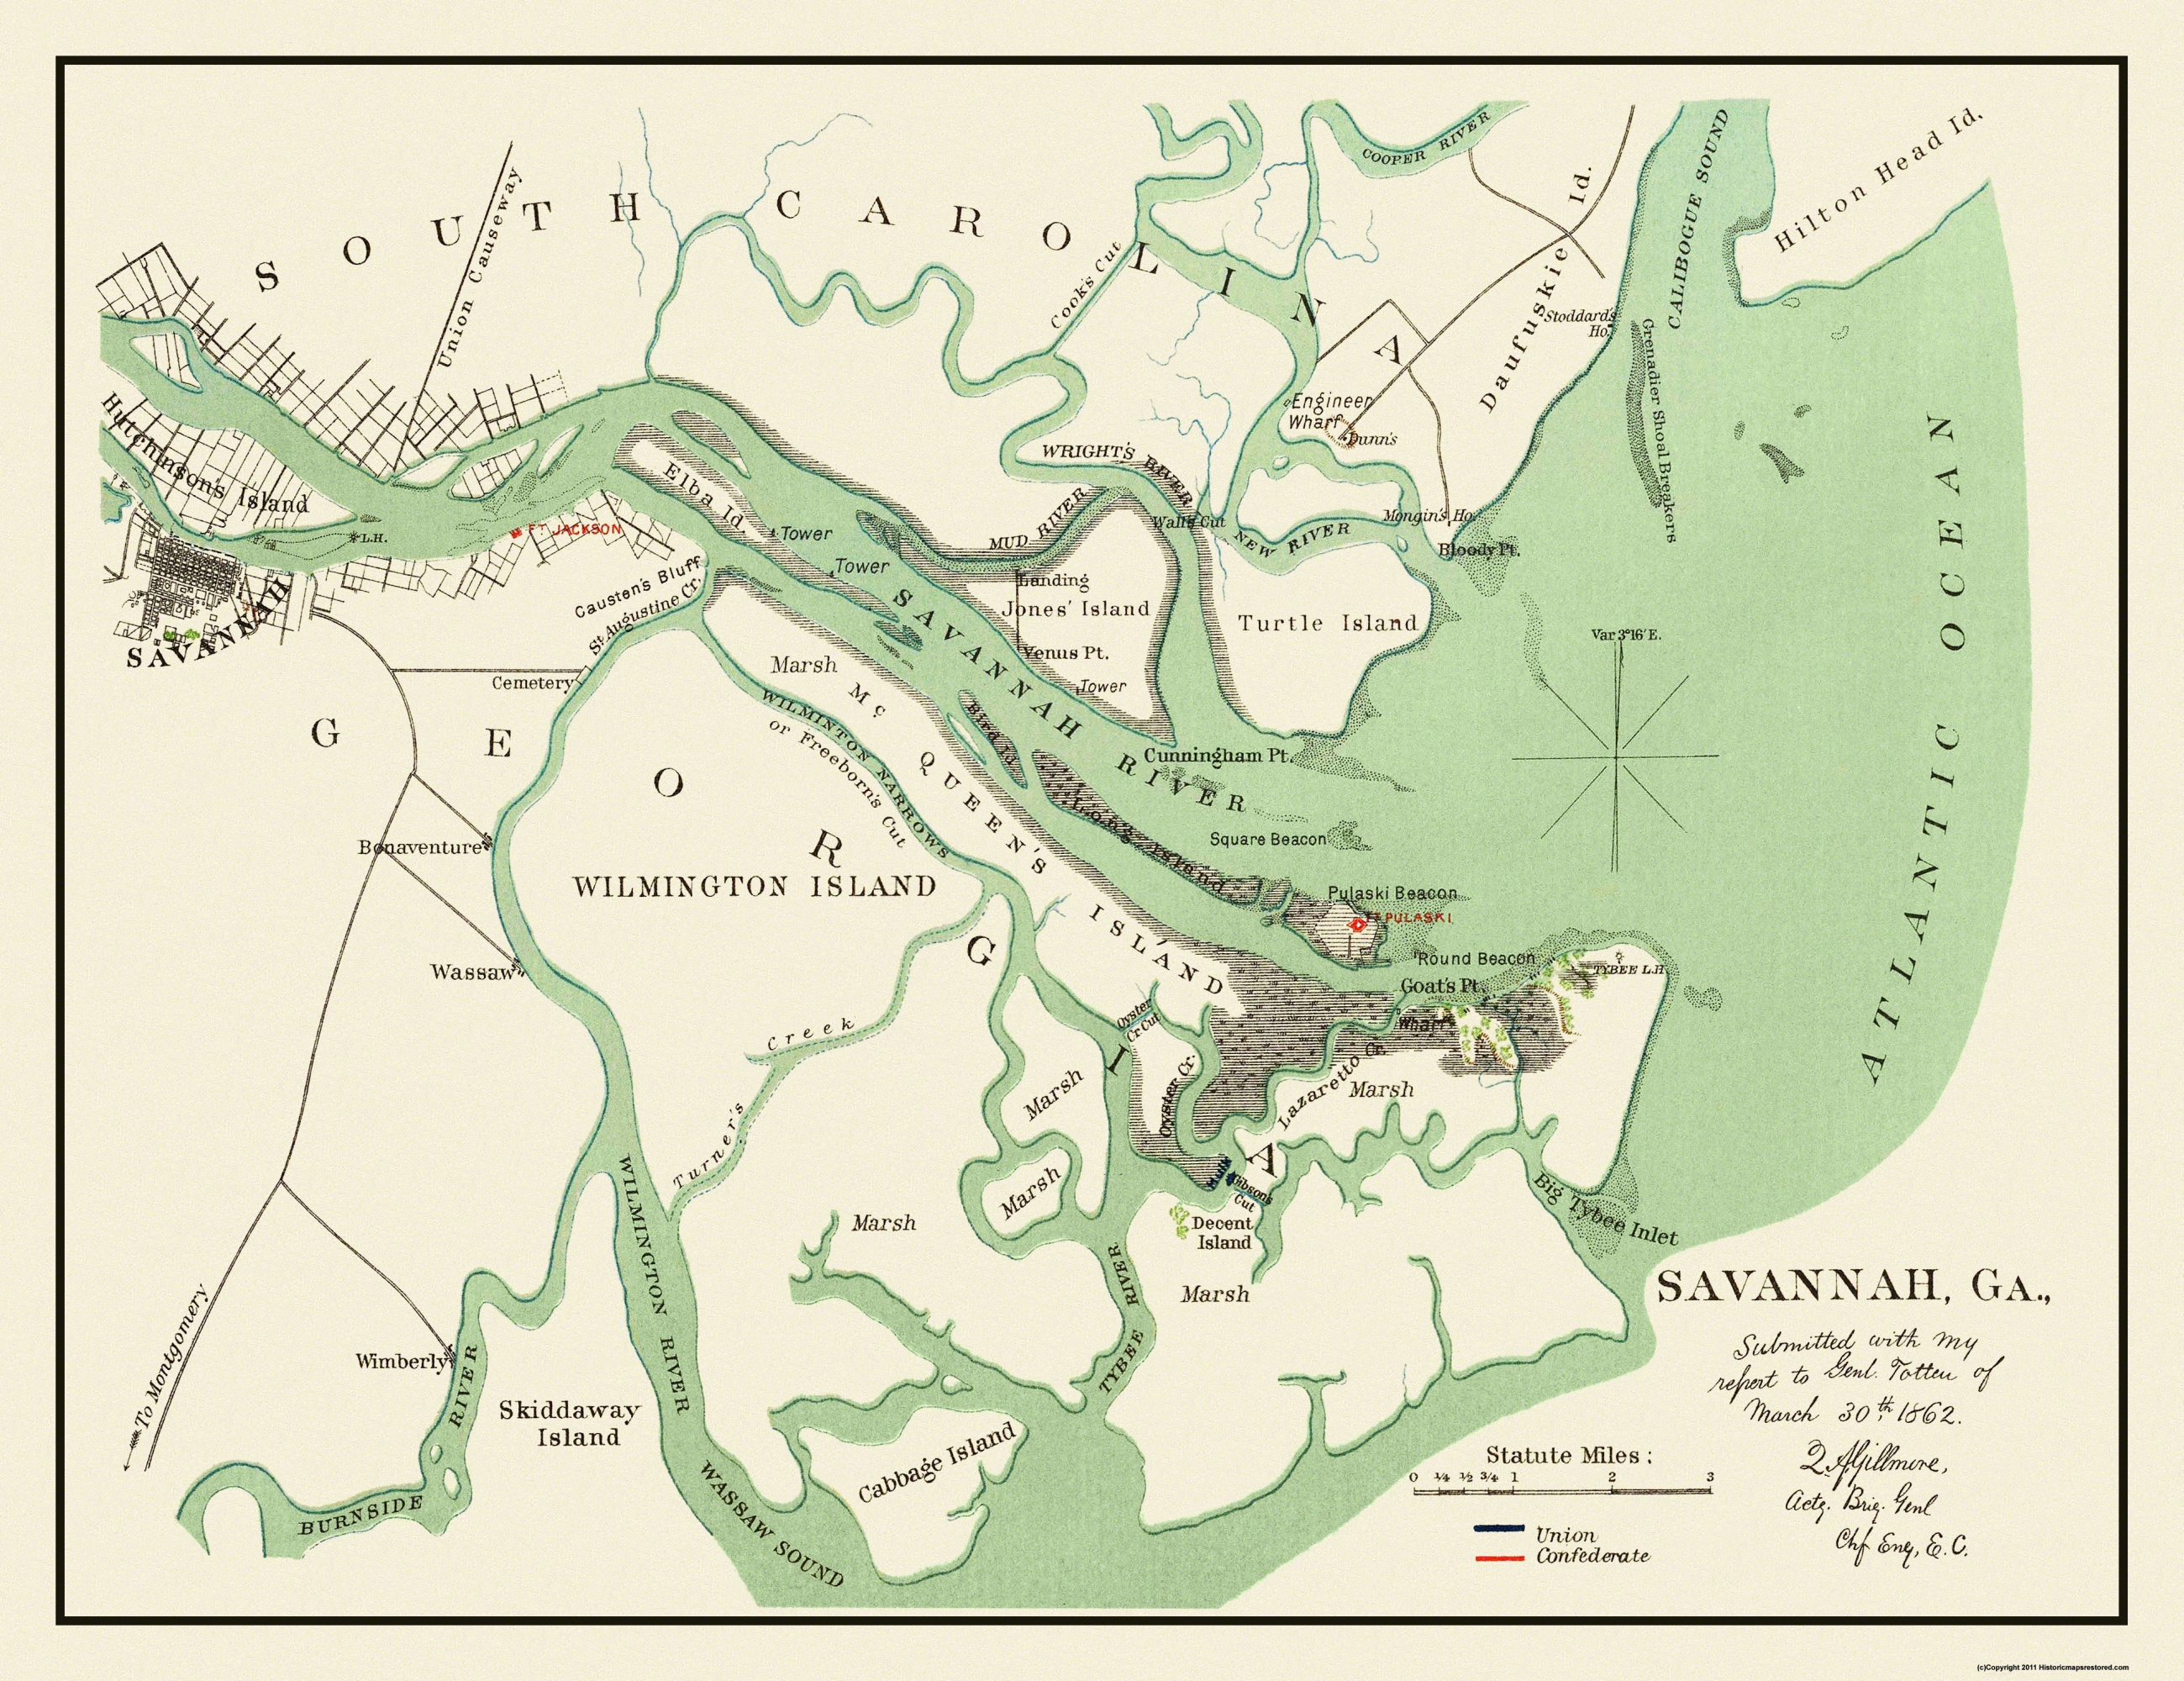 Old City Map Savannah Georgia 1862